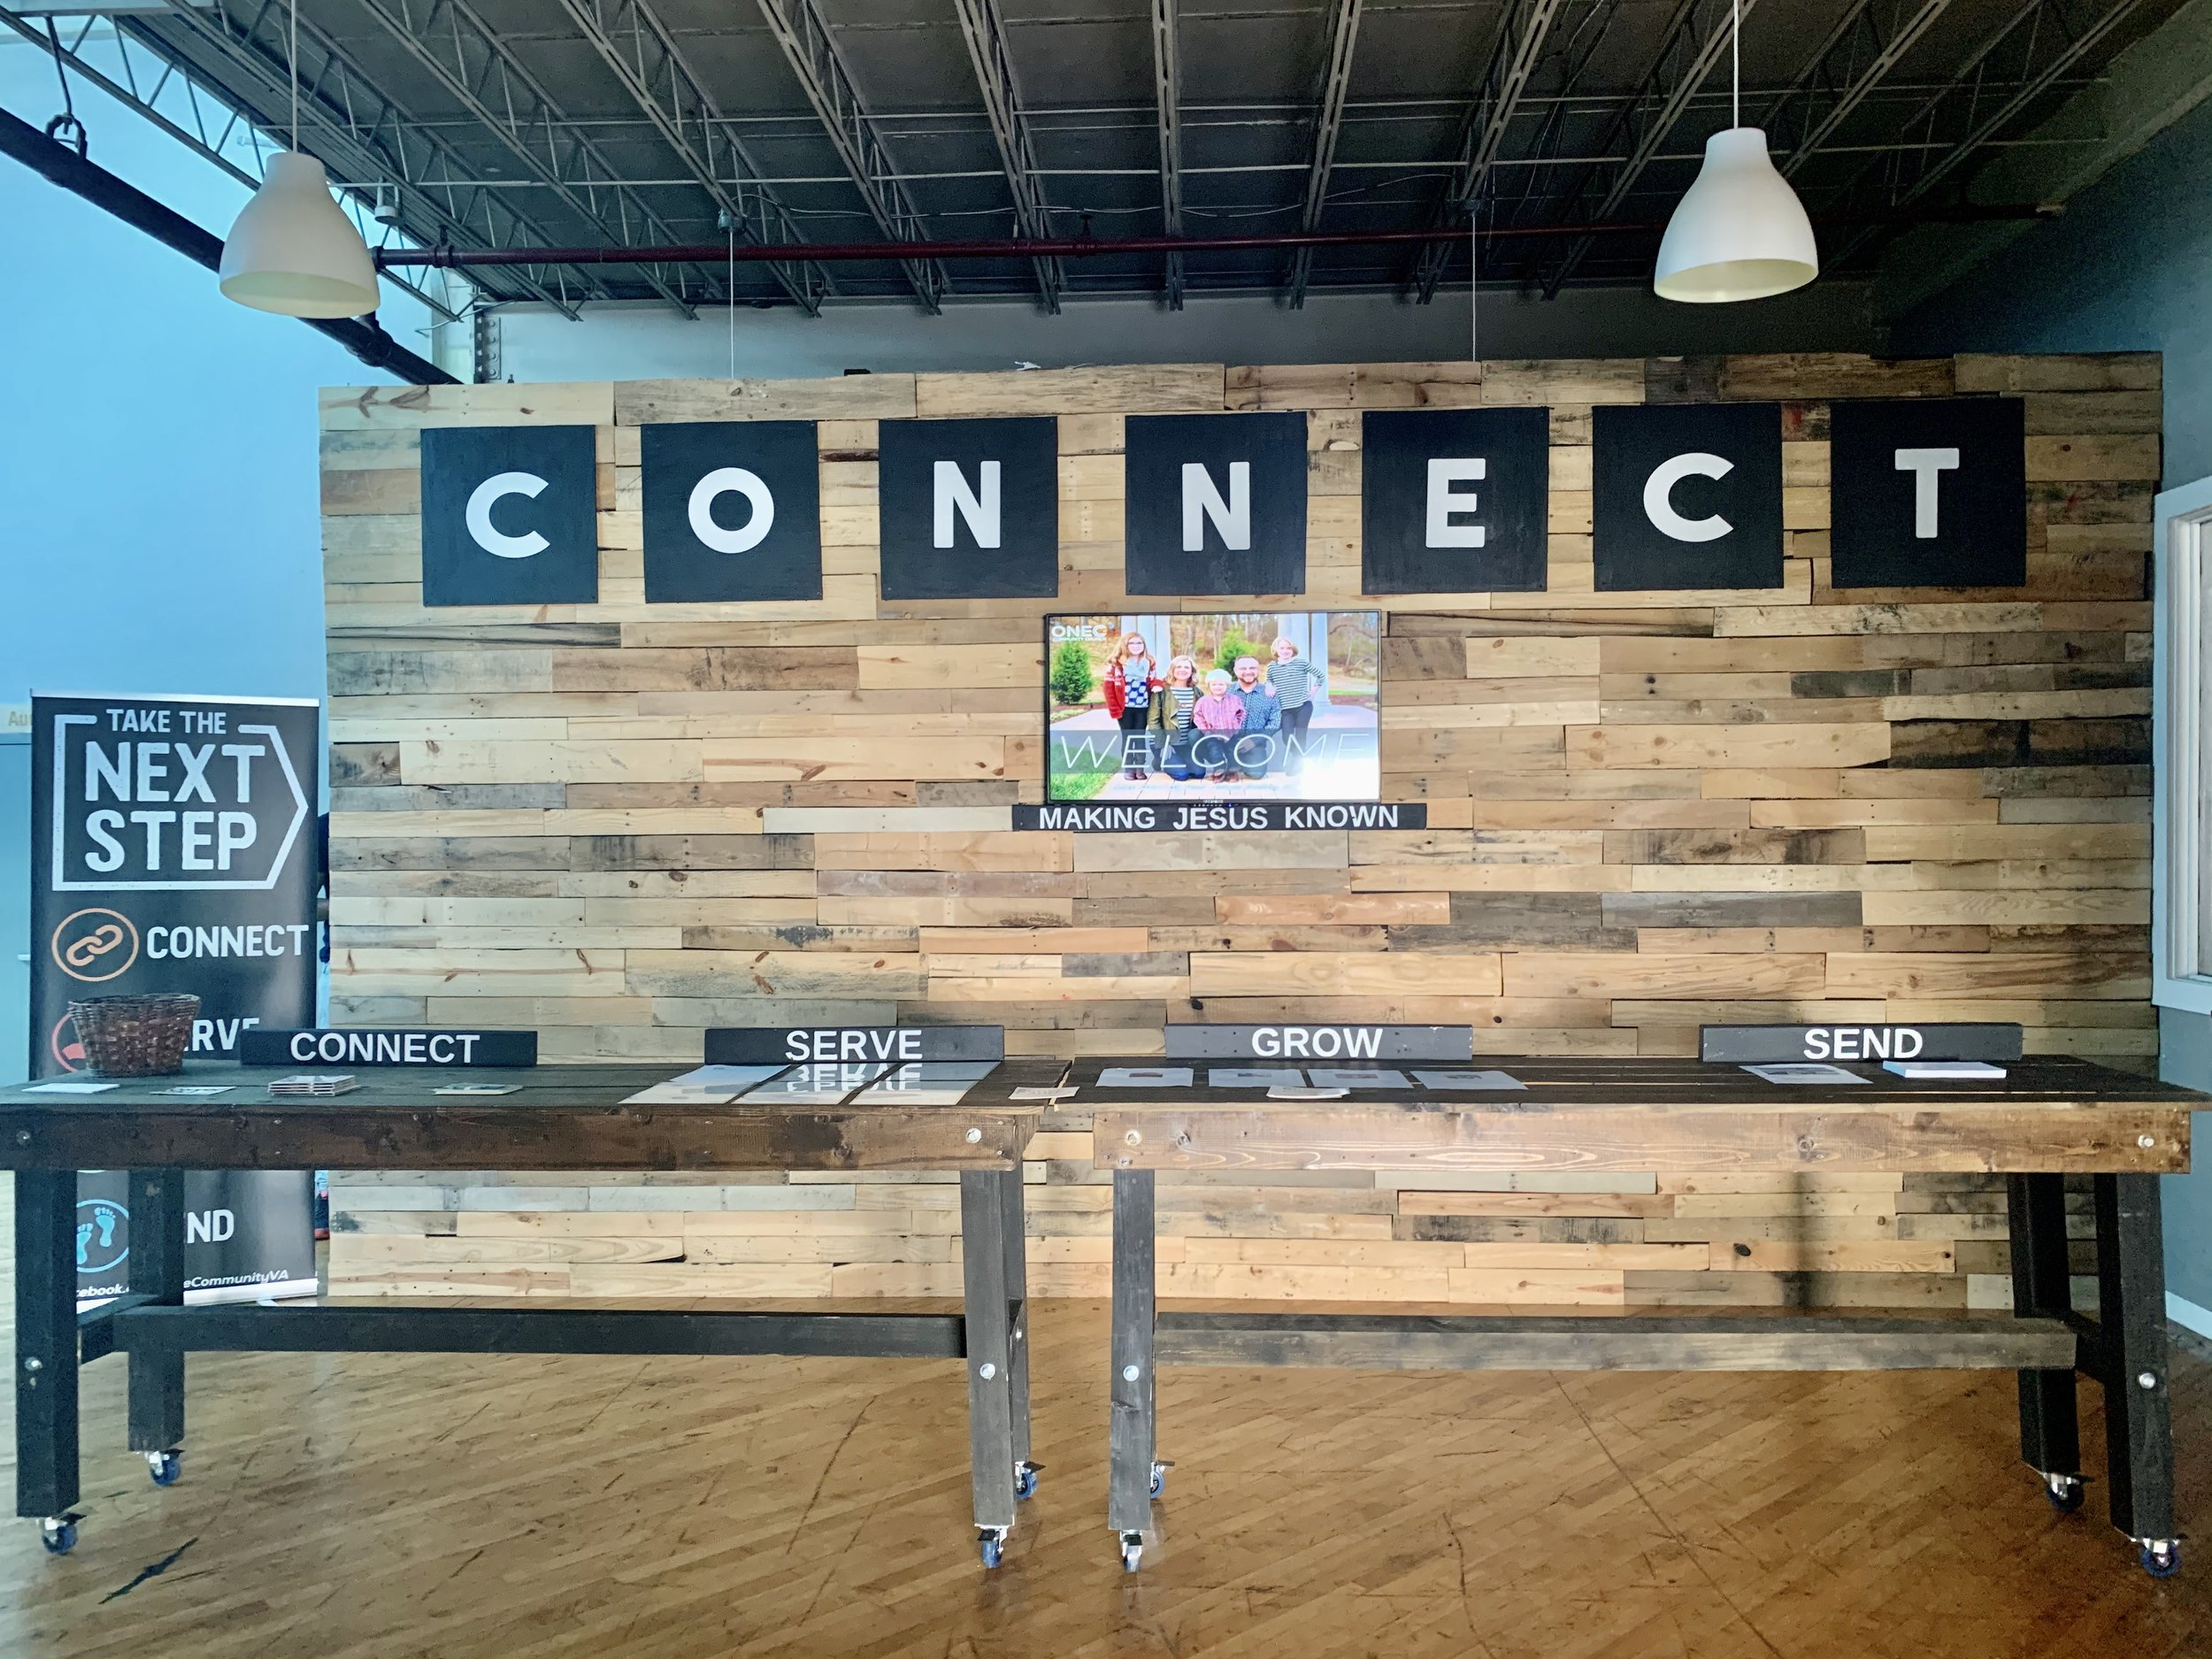 CONNECT TABLE - Learn more about our church, events, groups, and more at our connect table!